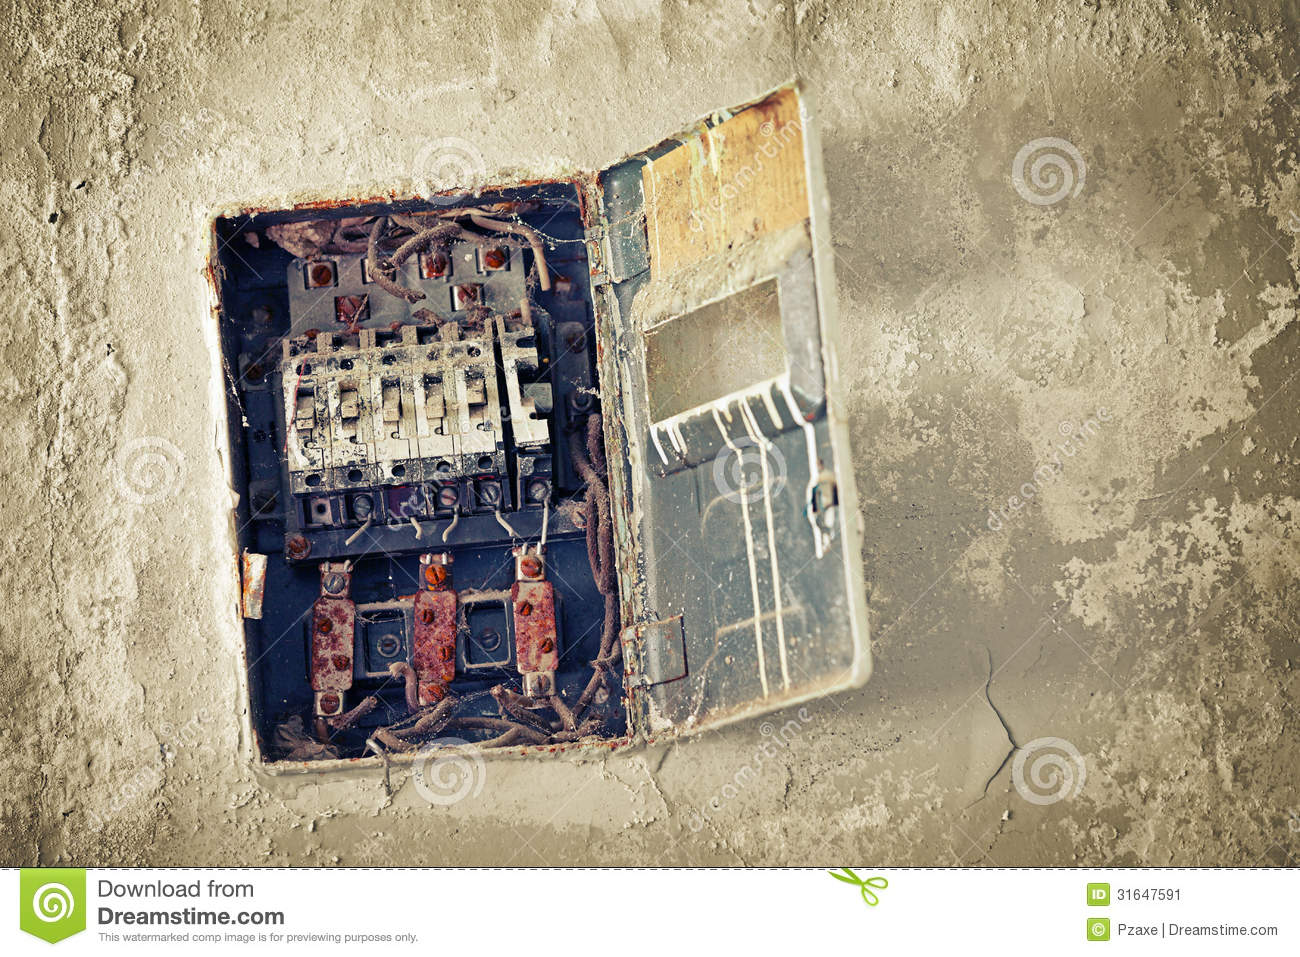 Fuse Box Wall Top Ideas About Garden Metering Circuit Databasecircuit Schematics Diagrams And Projects Old On The Stock Photo Image Bad Rusty Switch